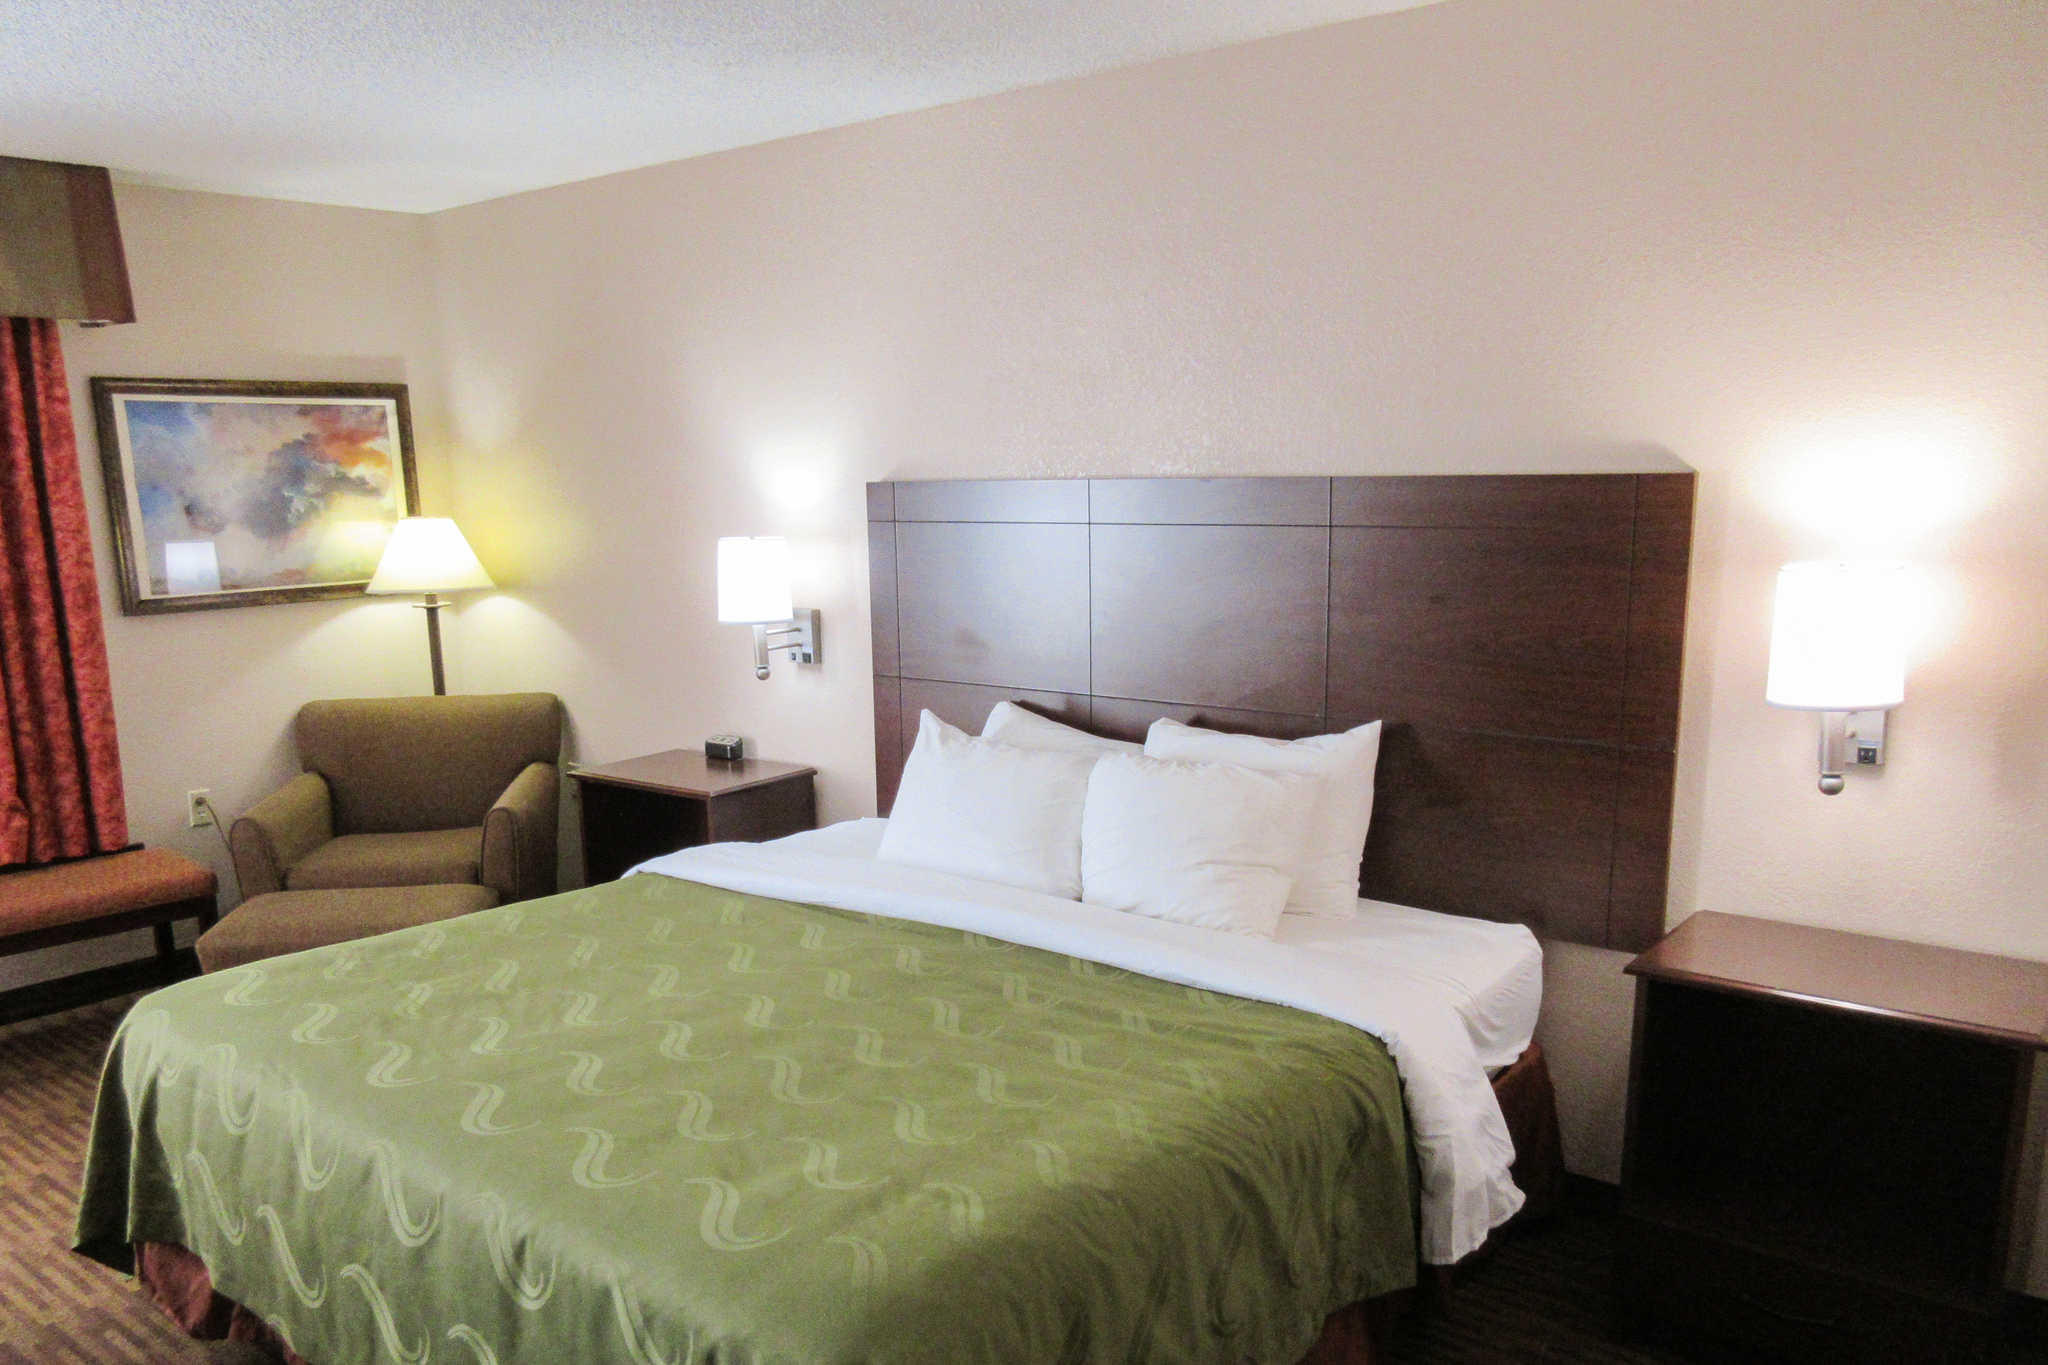 Quality Inn & Suites Lawrence - University Area image 5